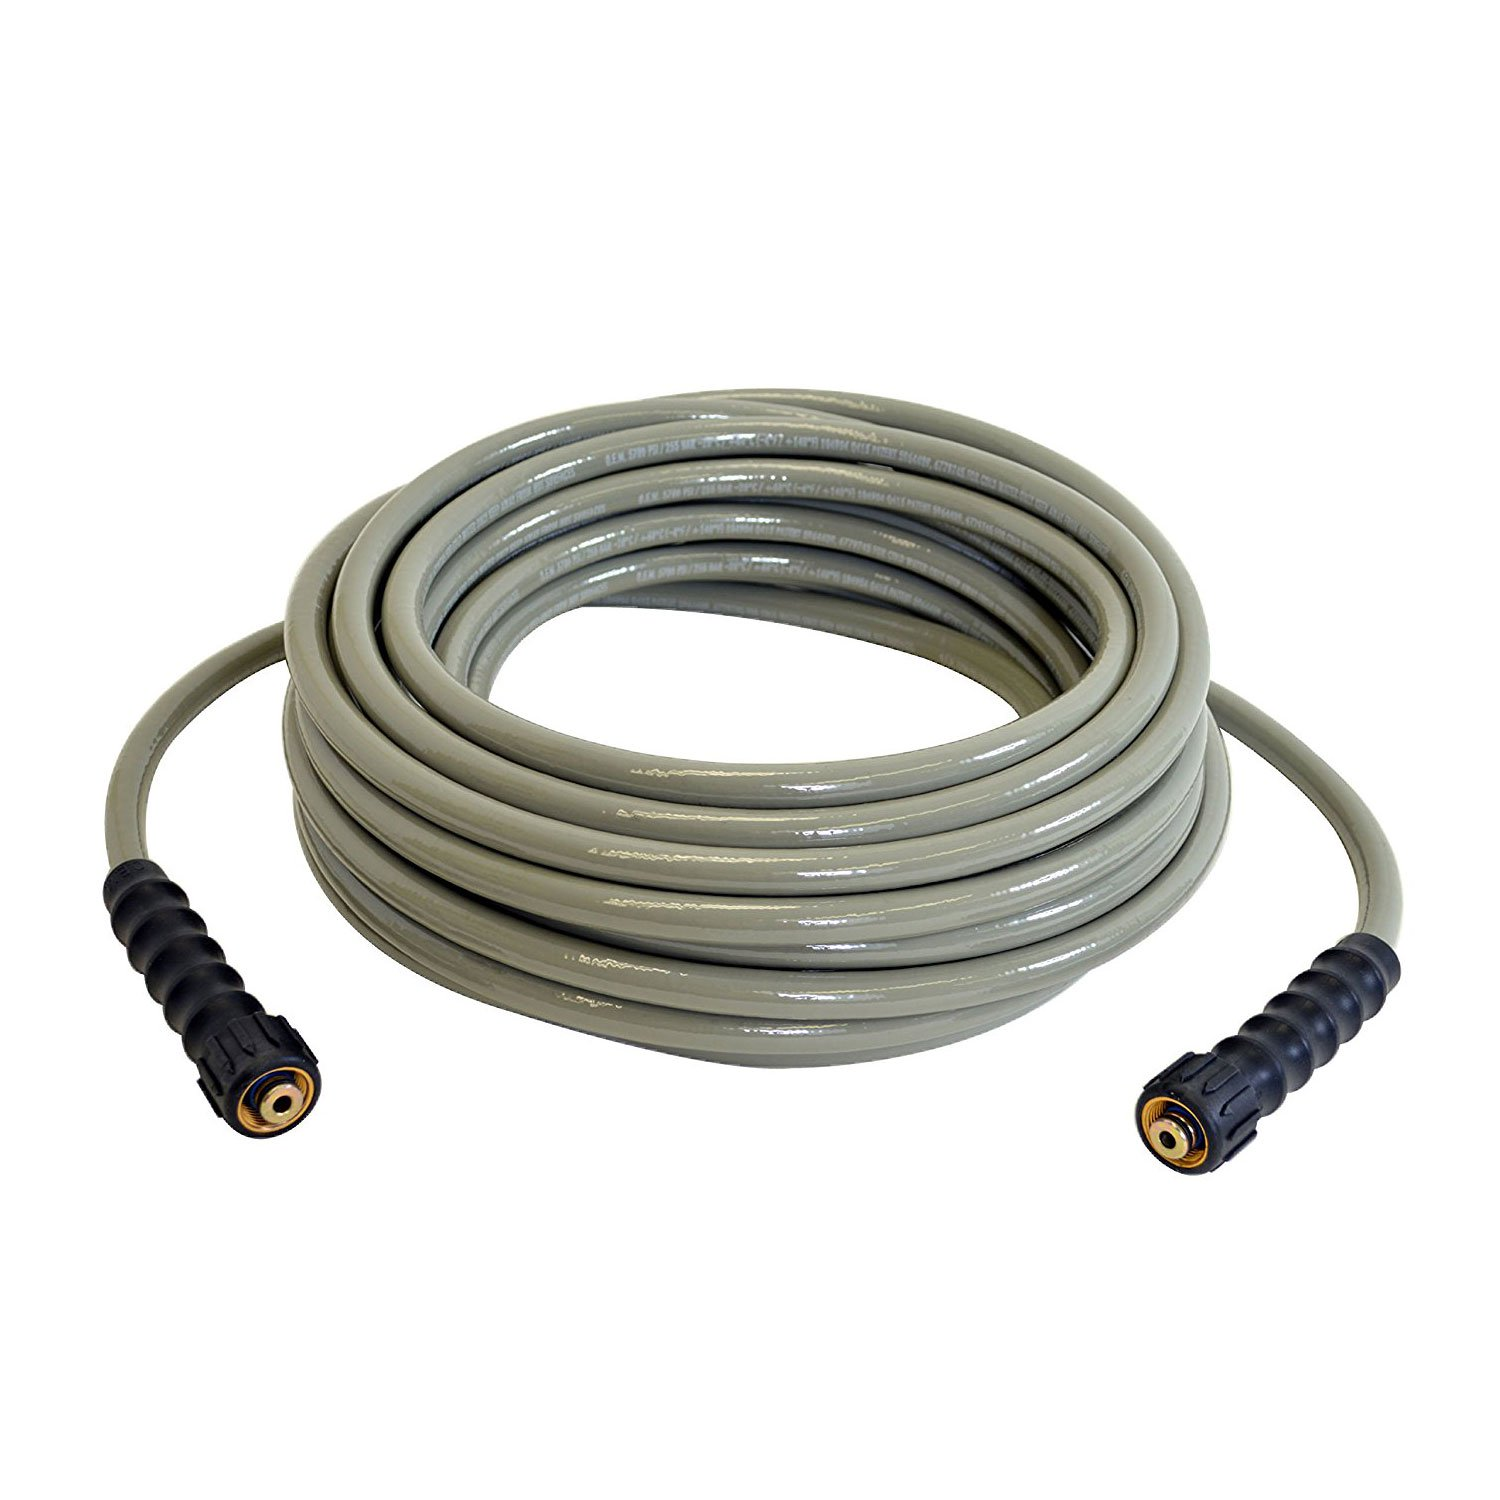 Simpson Cleaning MorFlex M22 3700 PSI Cold Water Pressure Washer Hose, 50 Feet